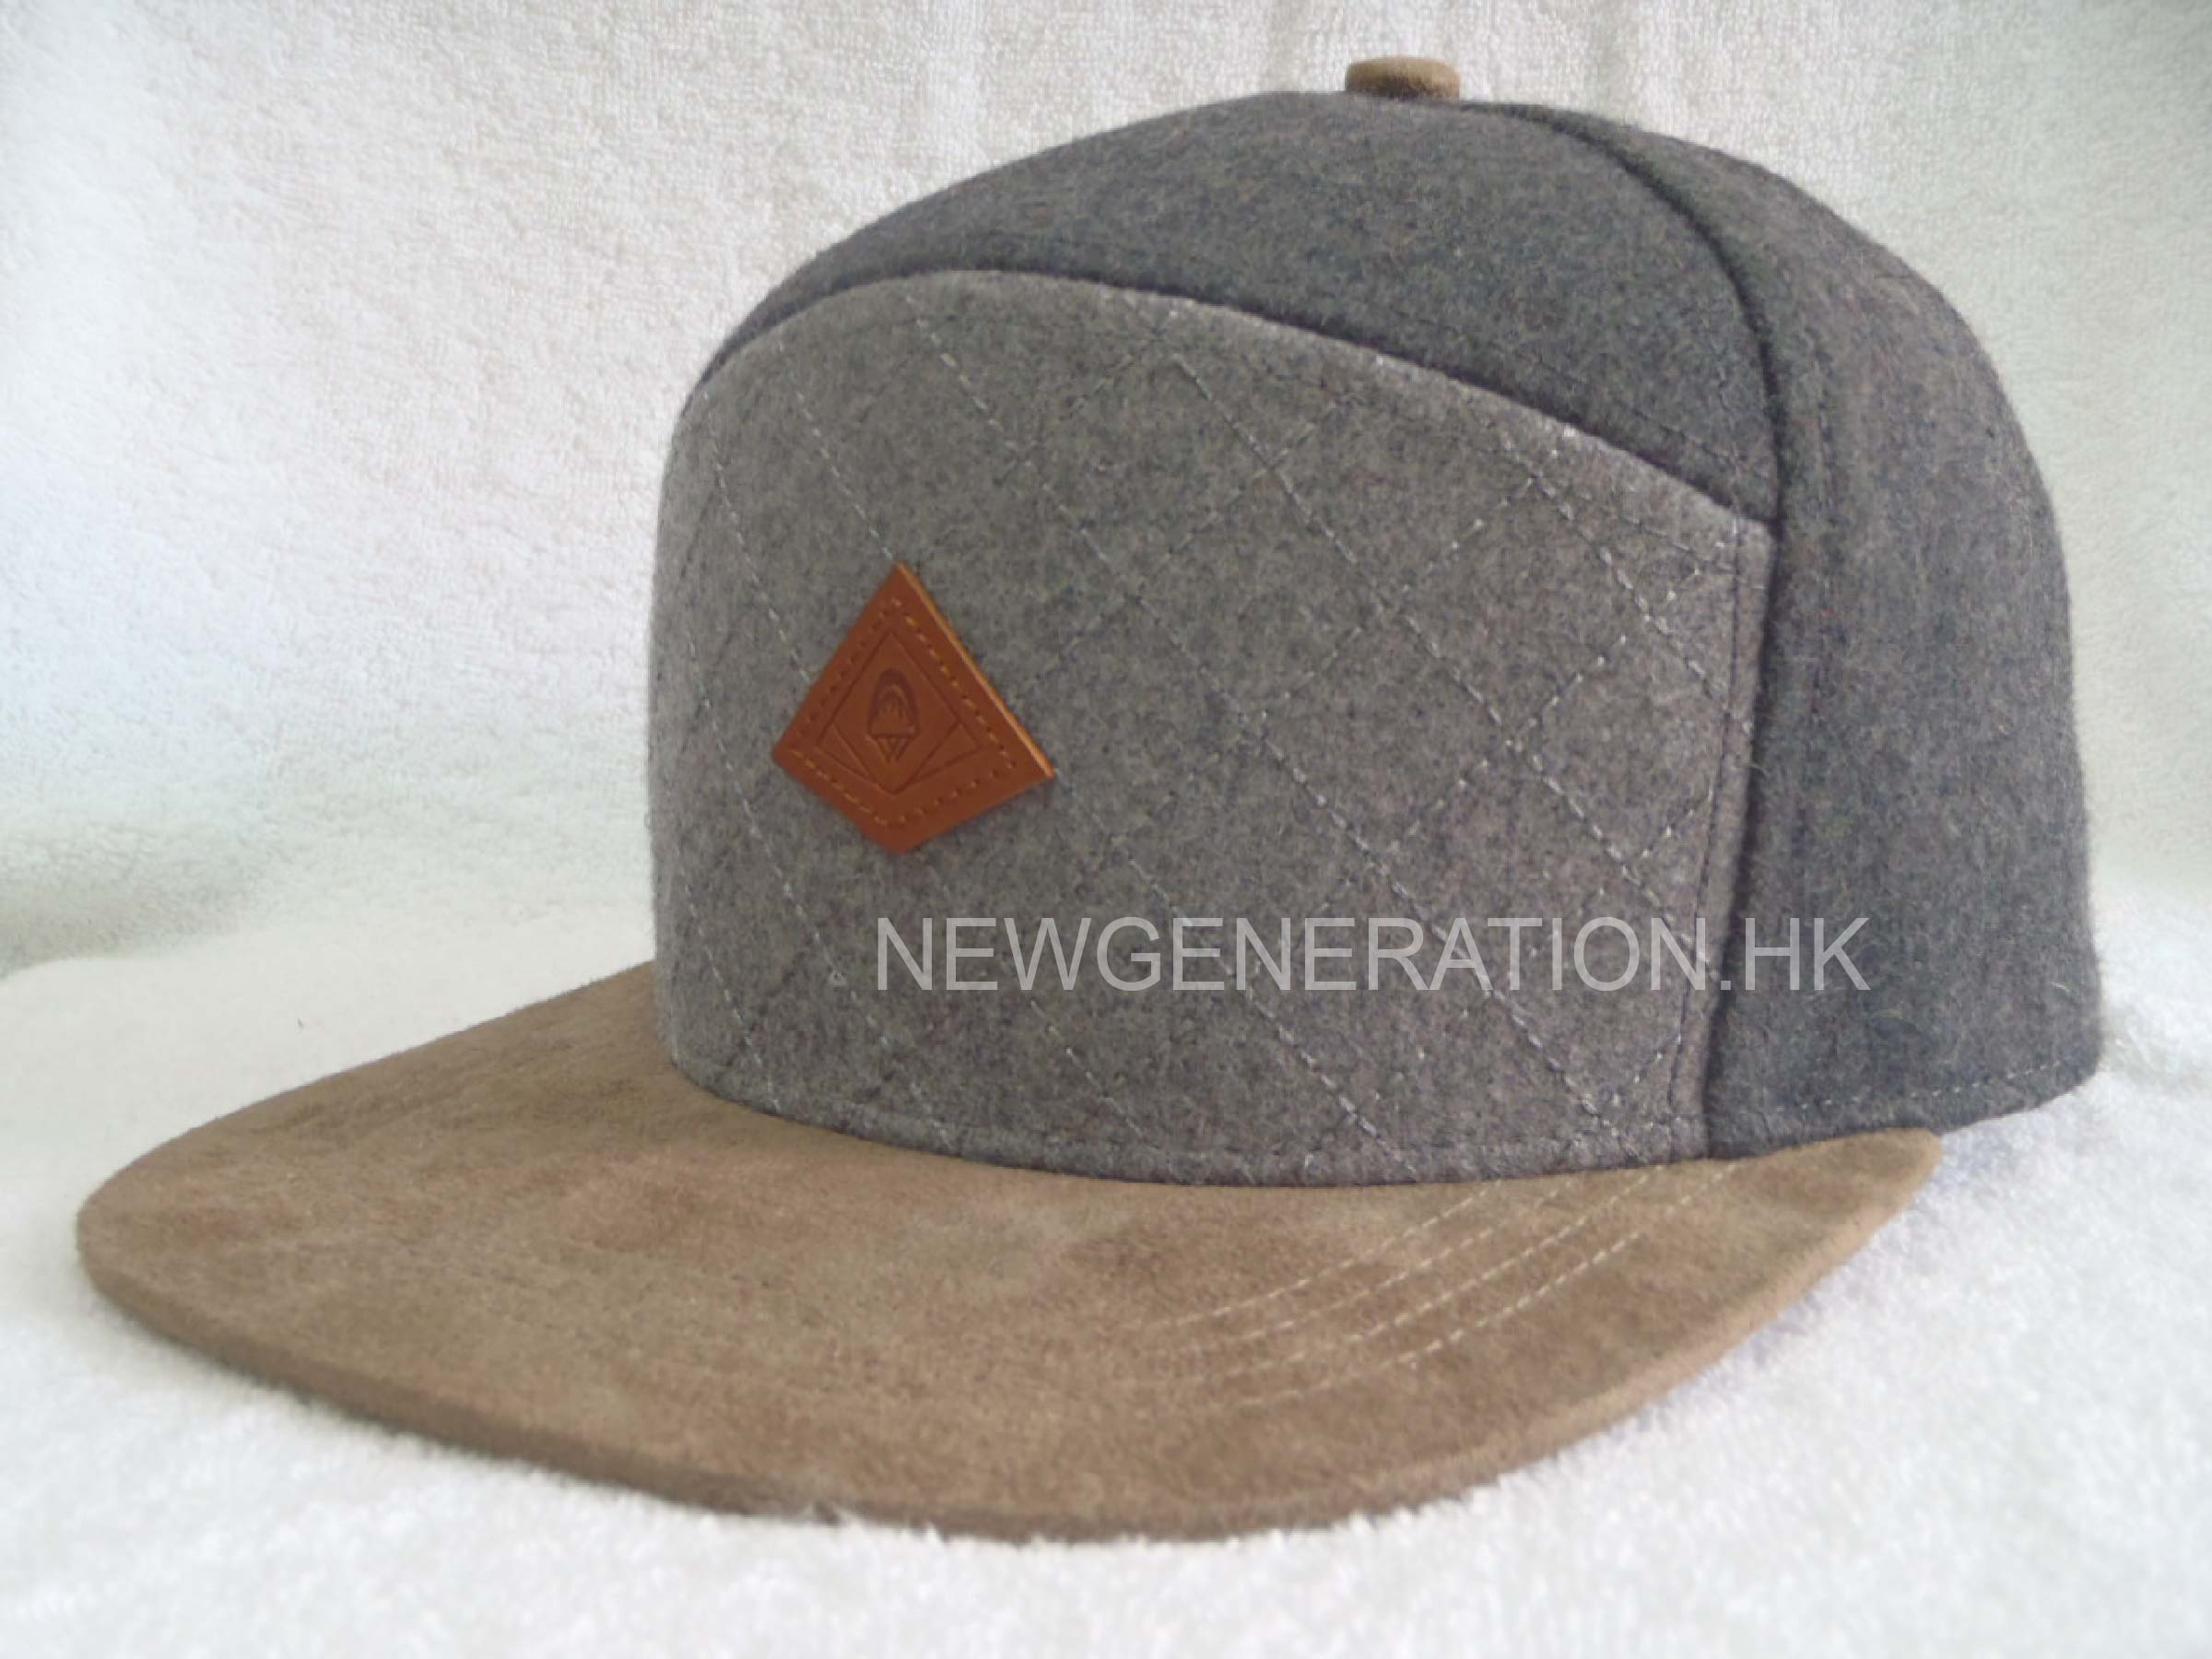 7a9b38951d9a9 Wool Blend 5 Panel High Profil Strapback Cap With Debossed Leather Patch